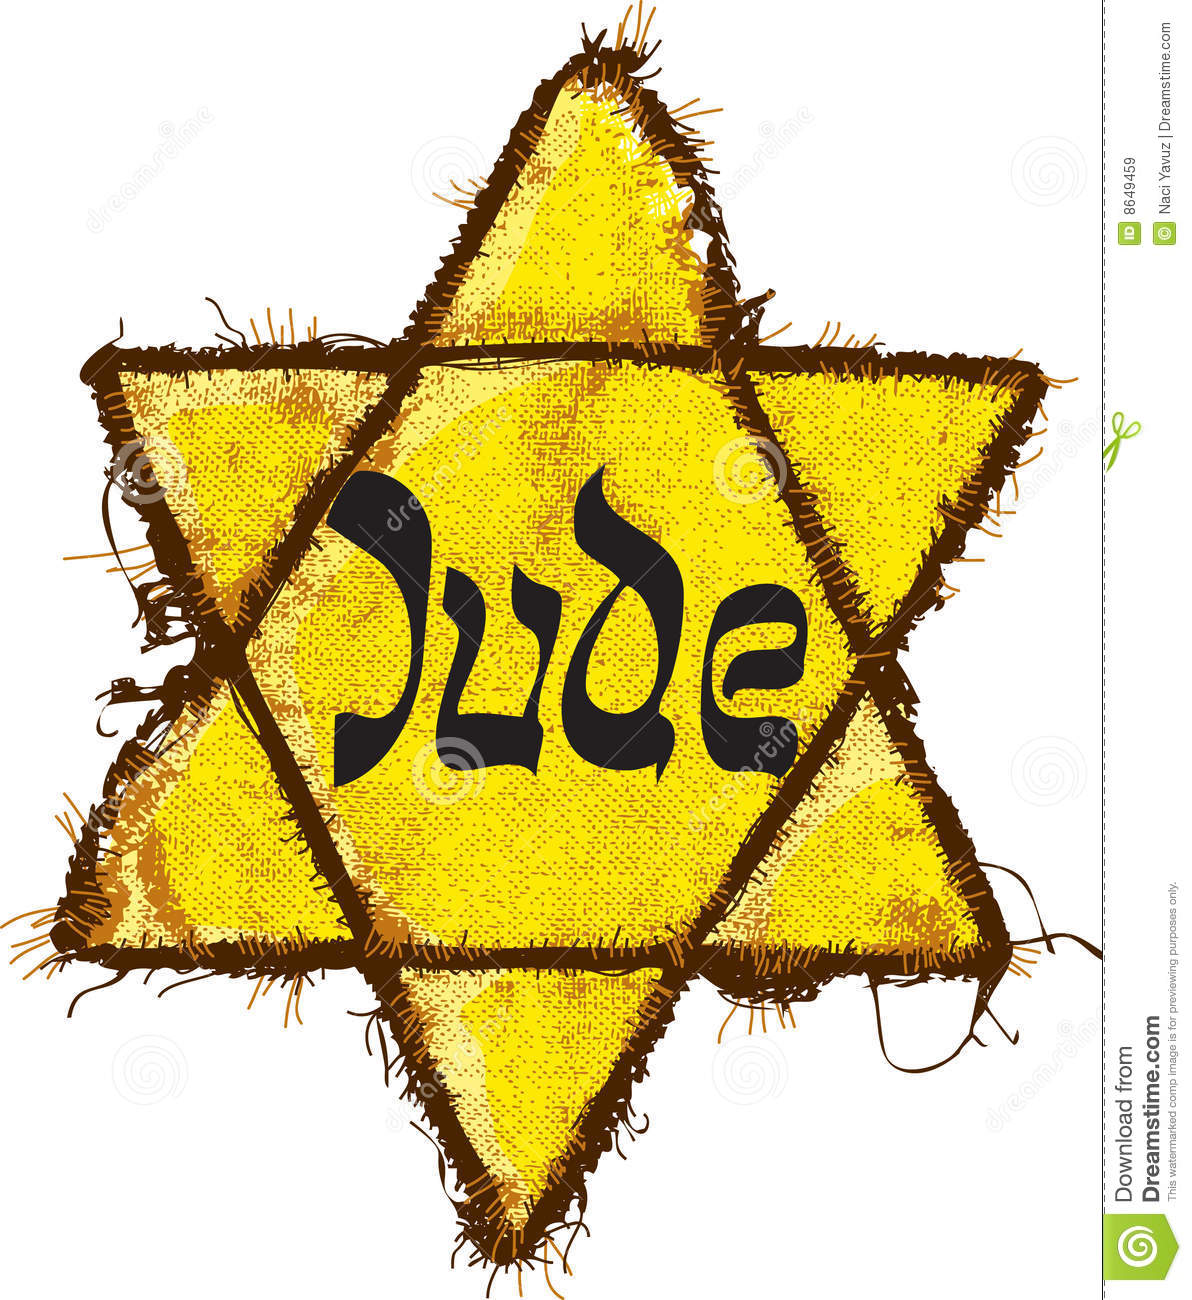 Jewish Yellow Star Classification Royalty Free Stock